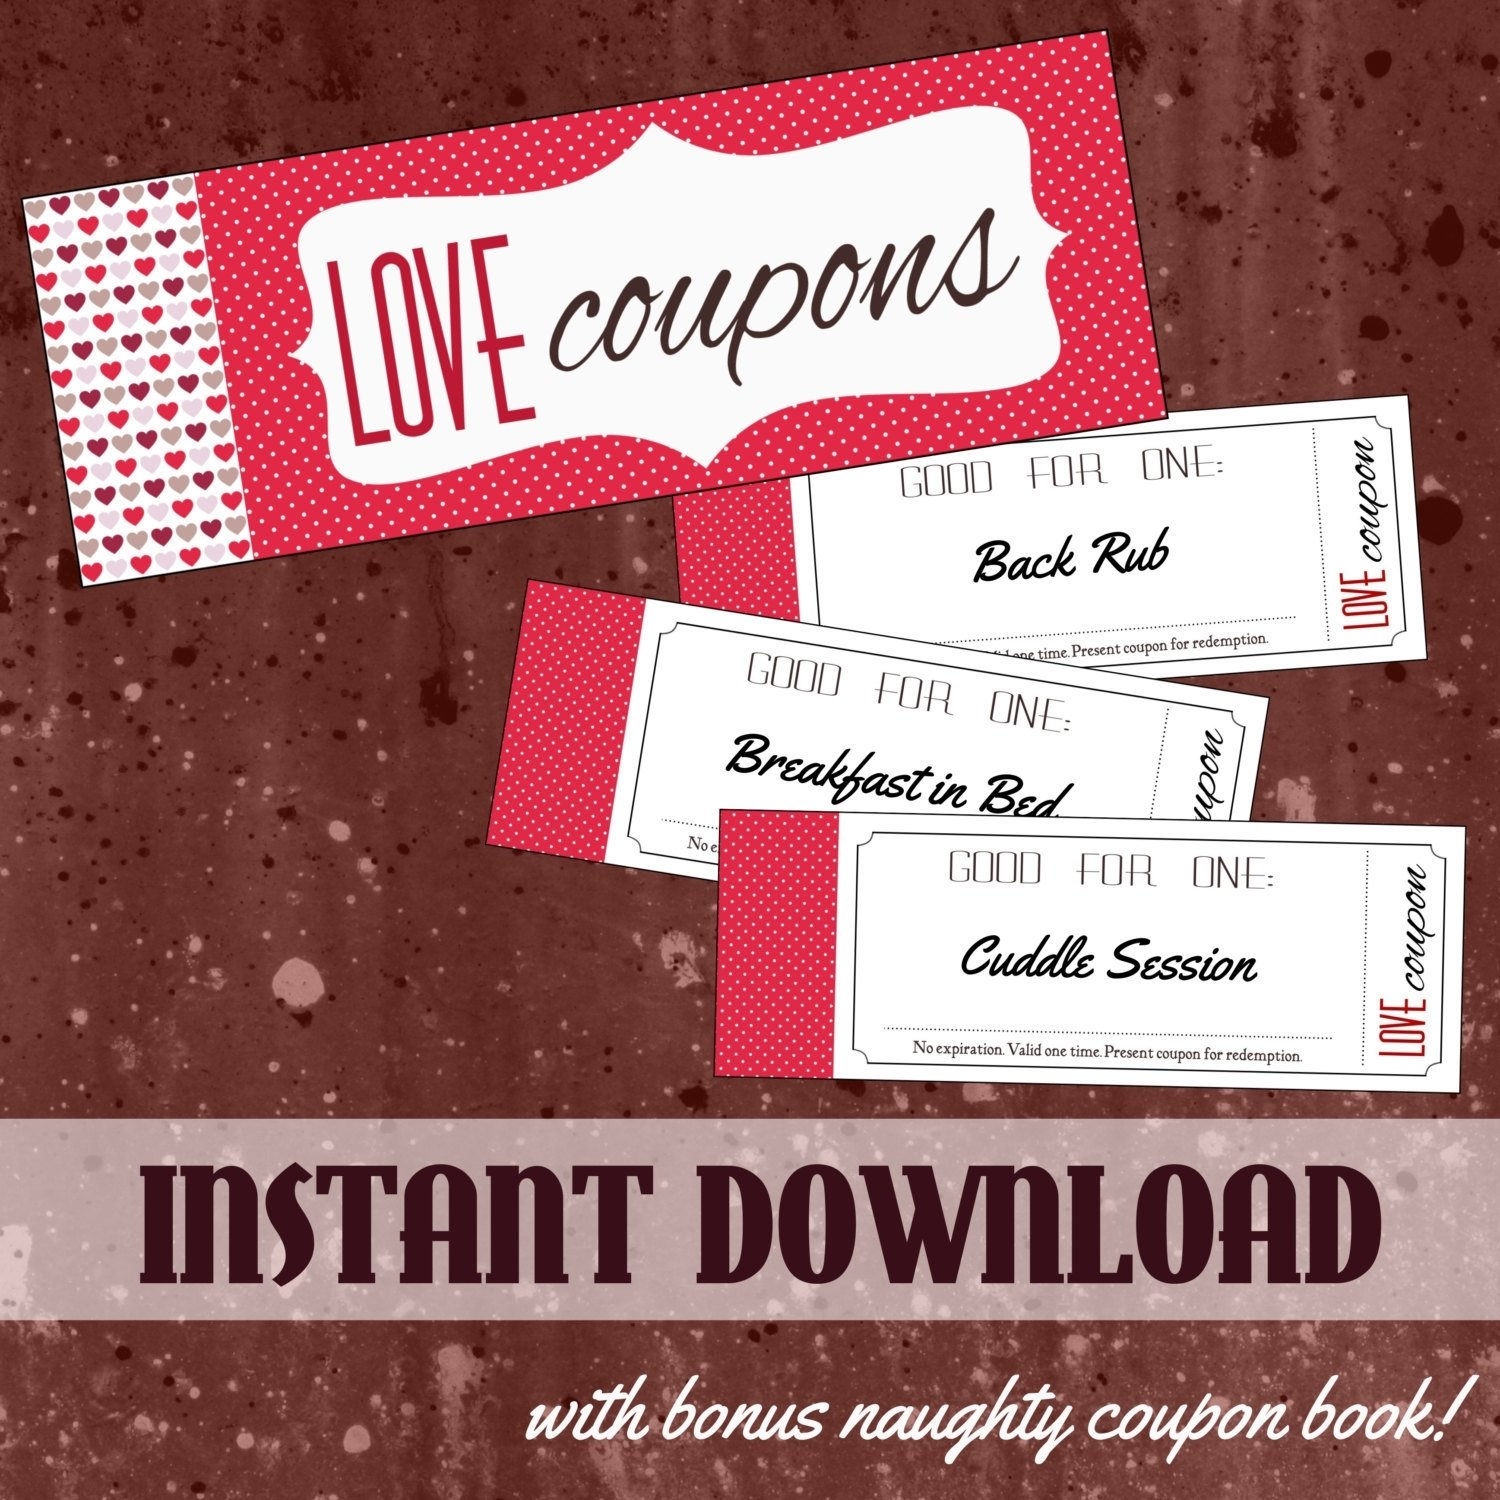 10 Wonderful Love Coupon Ideas For Boyfriend printable love coupon book for him or for her with bonus naughty 2 2020